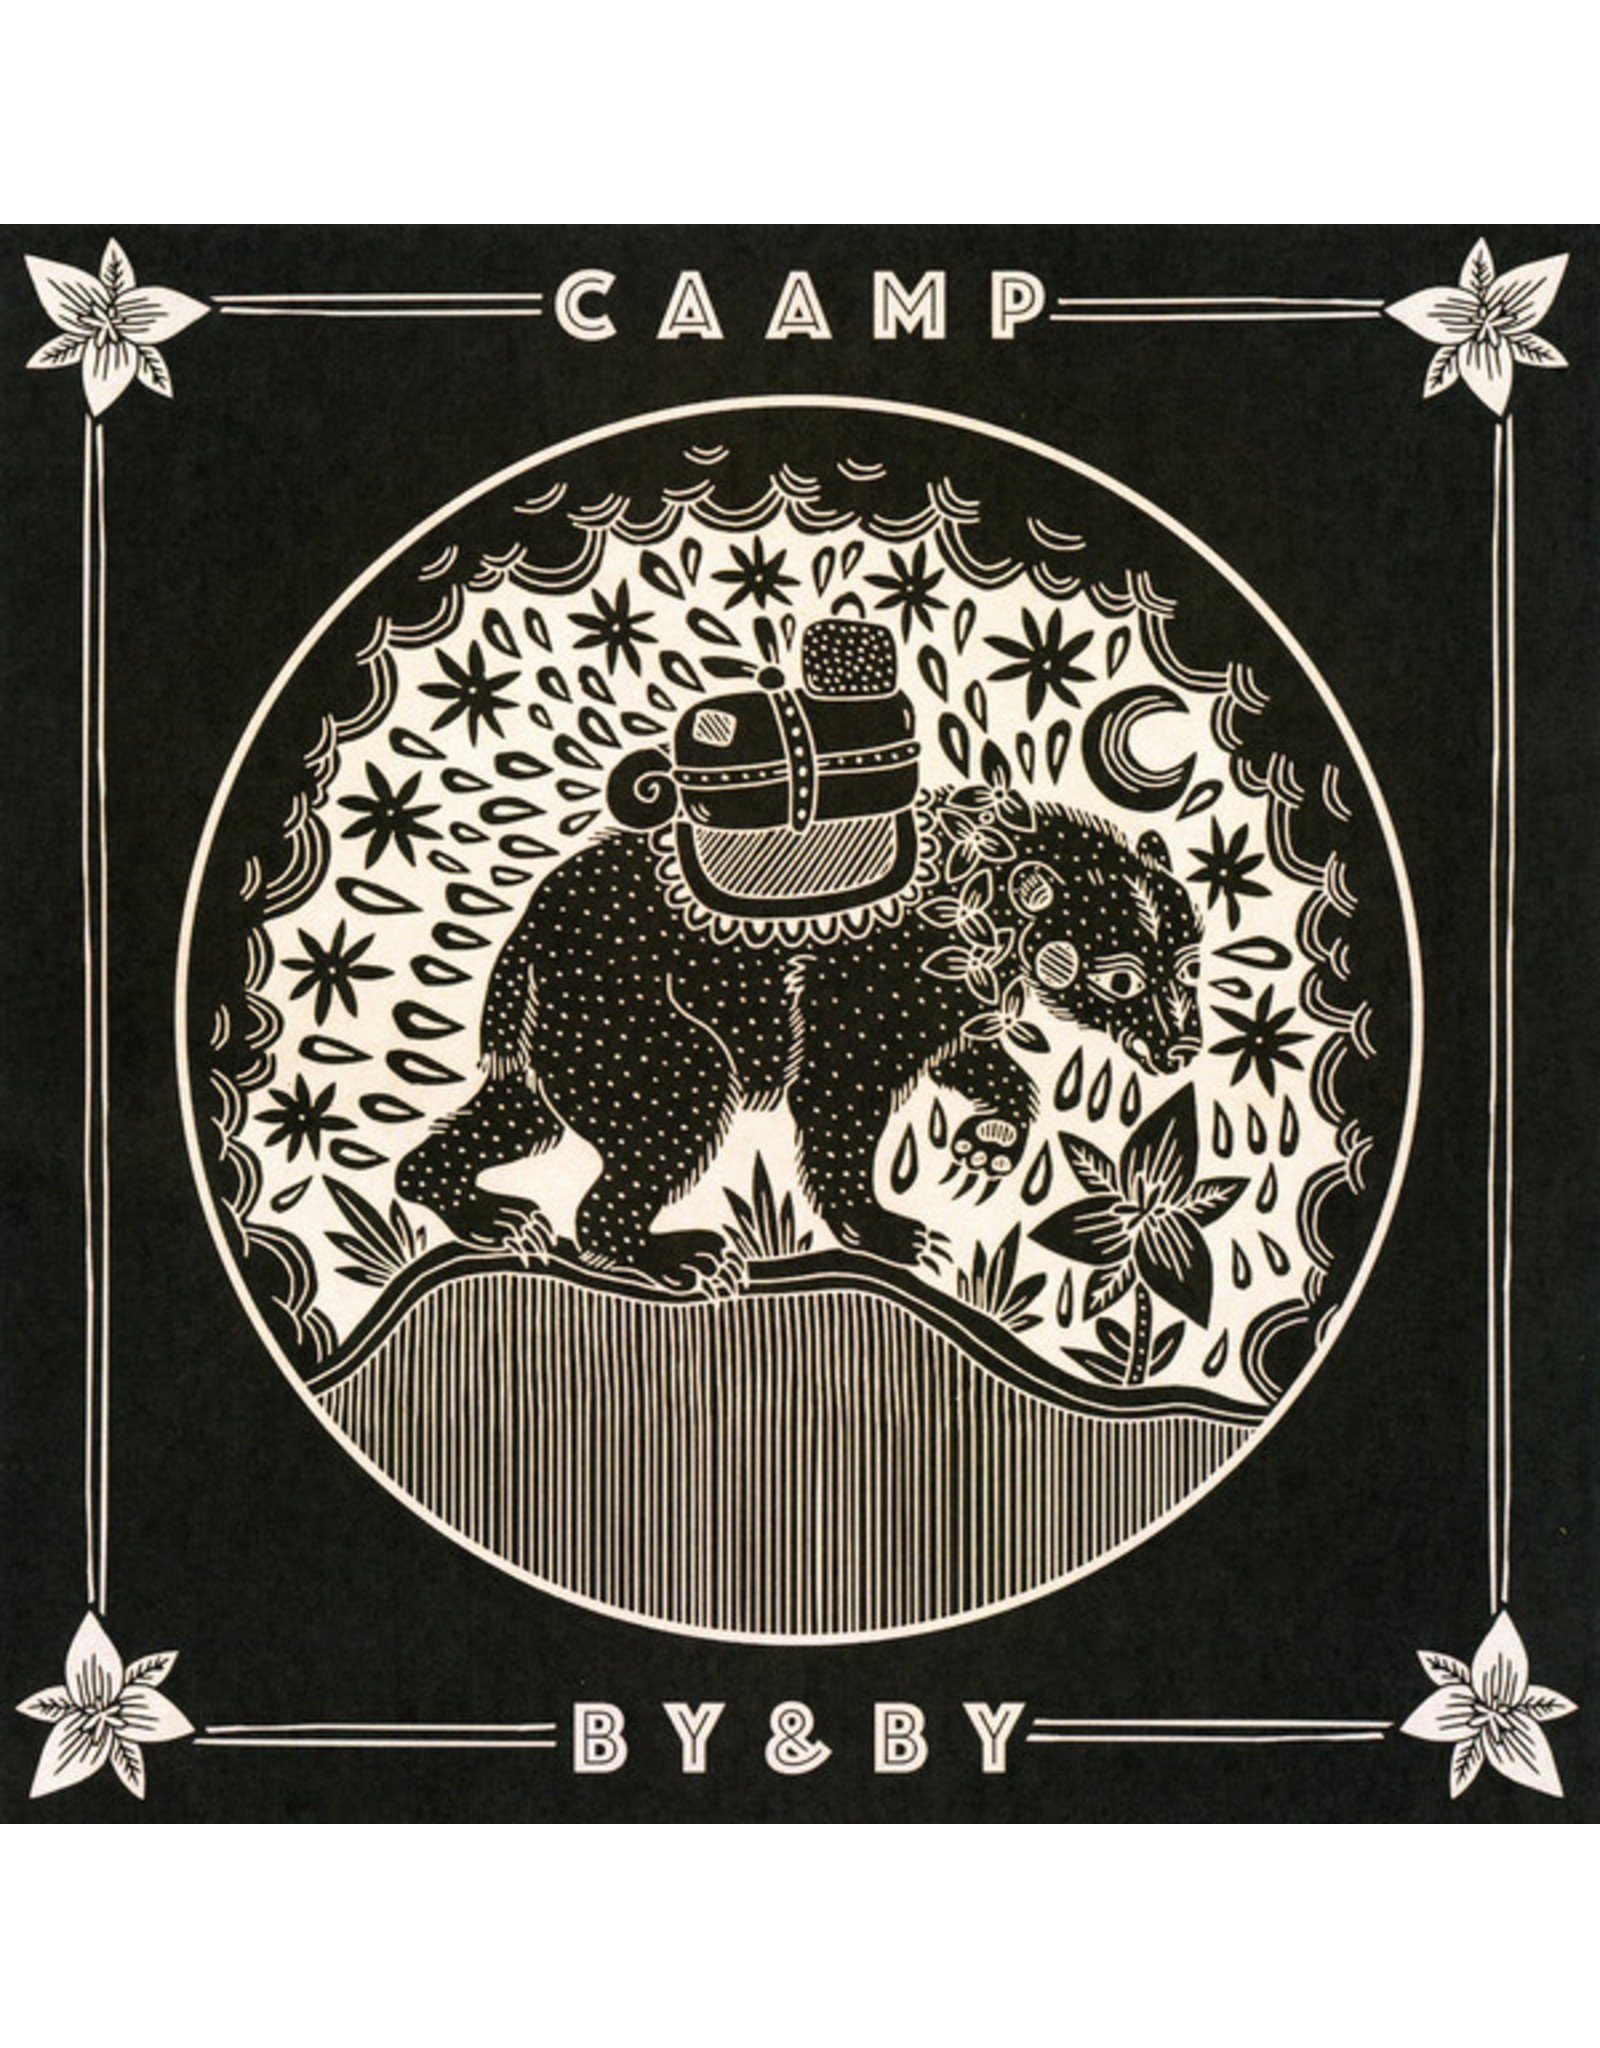 New Vinyl Caamp - By & By 2LP